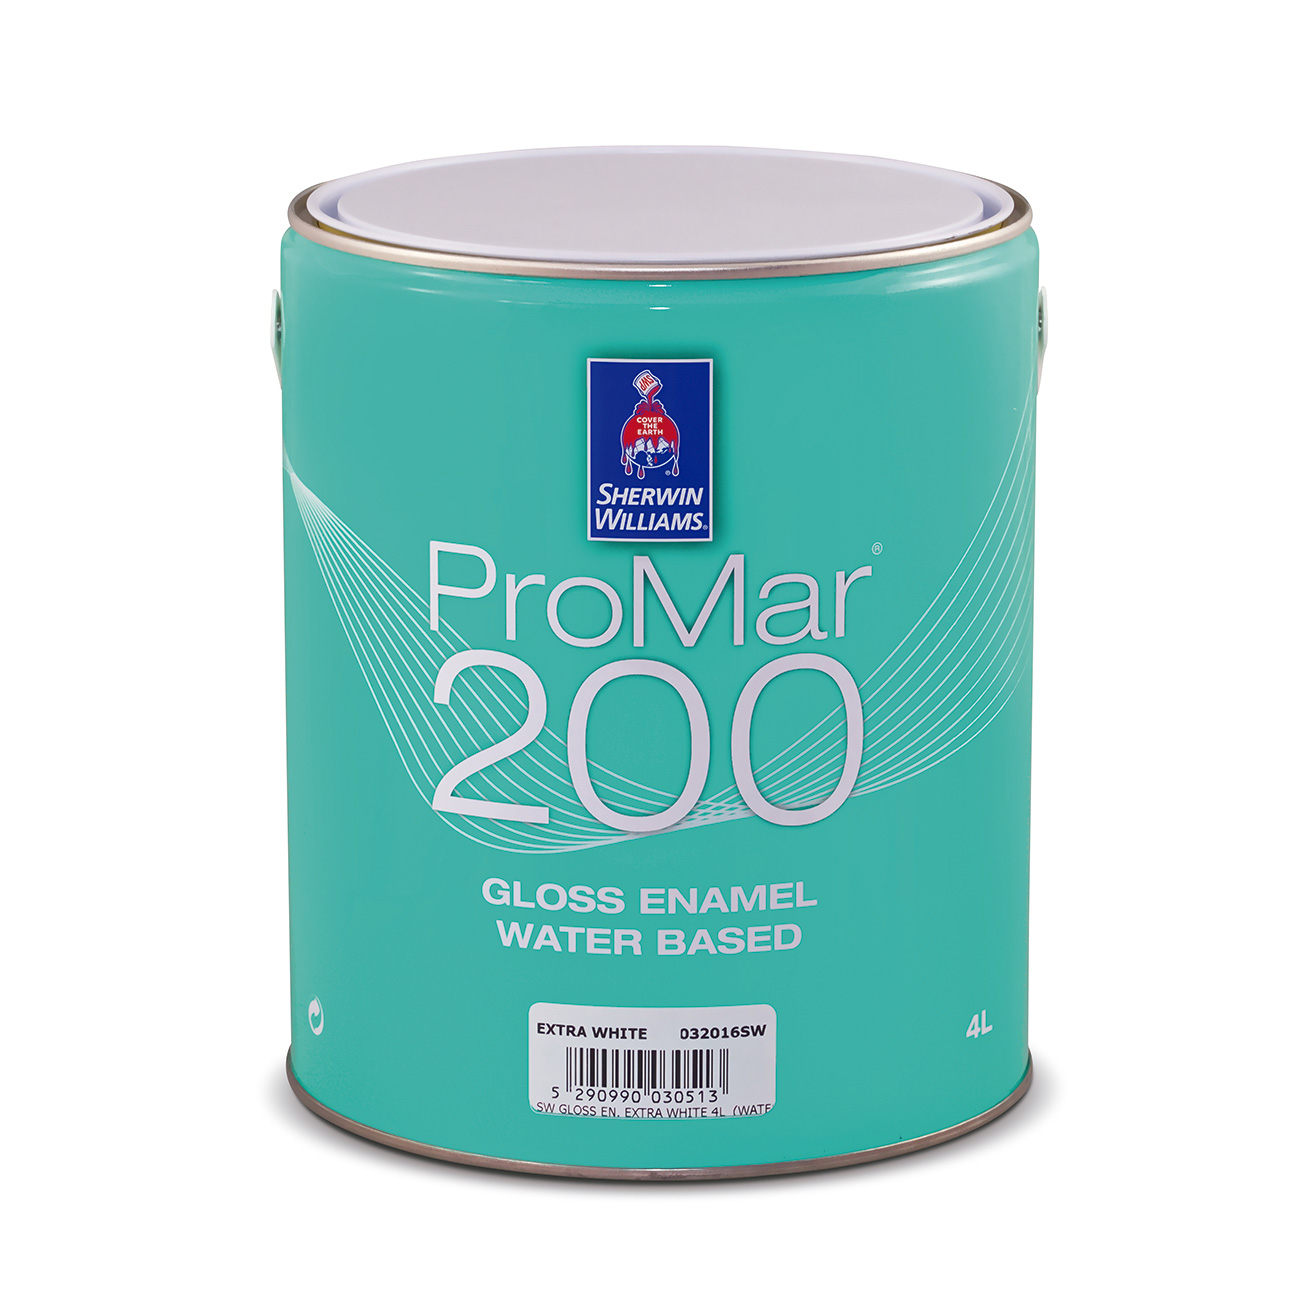 SHERWIN-WILLIAMS® PROMAR® 200 GLOSS ENAMEL WATER BASED EXTRA WHITE 4L